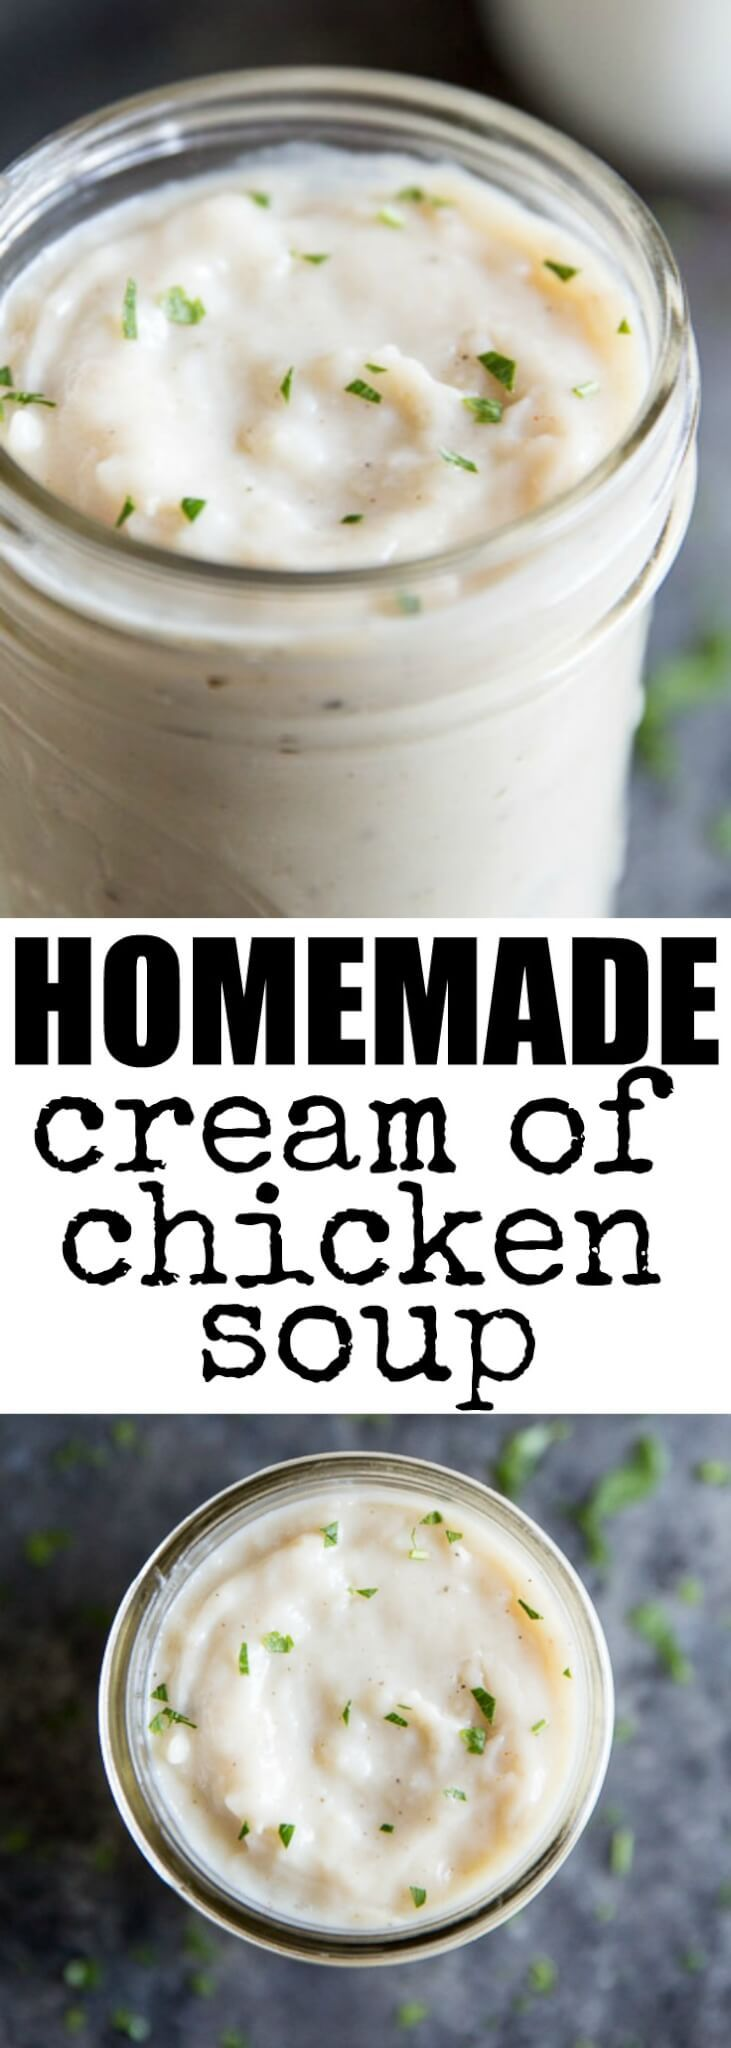 Instead of opening up a can of condensed soup, make this easy Homemade Cream of Chicken Soup with simple ingredients you probably already have on hand.